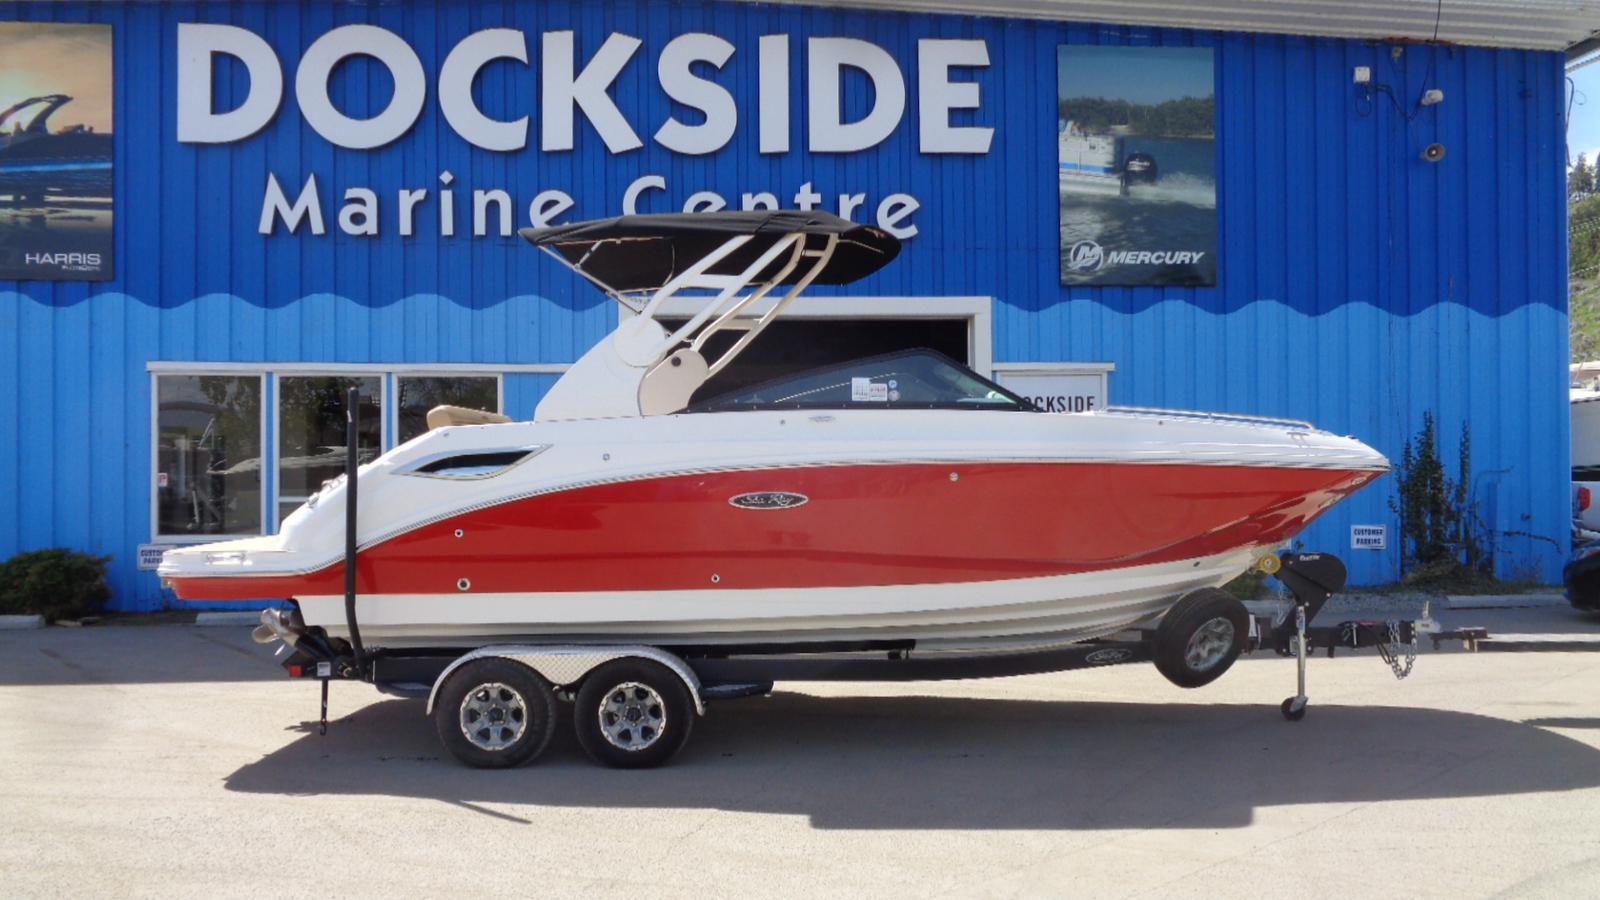 Inventory from Sea Ray Dockside Marine Centre Ltd  West